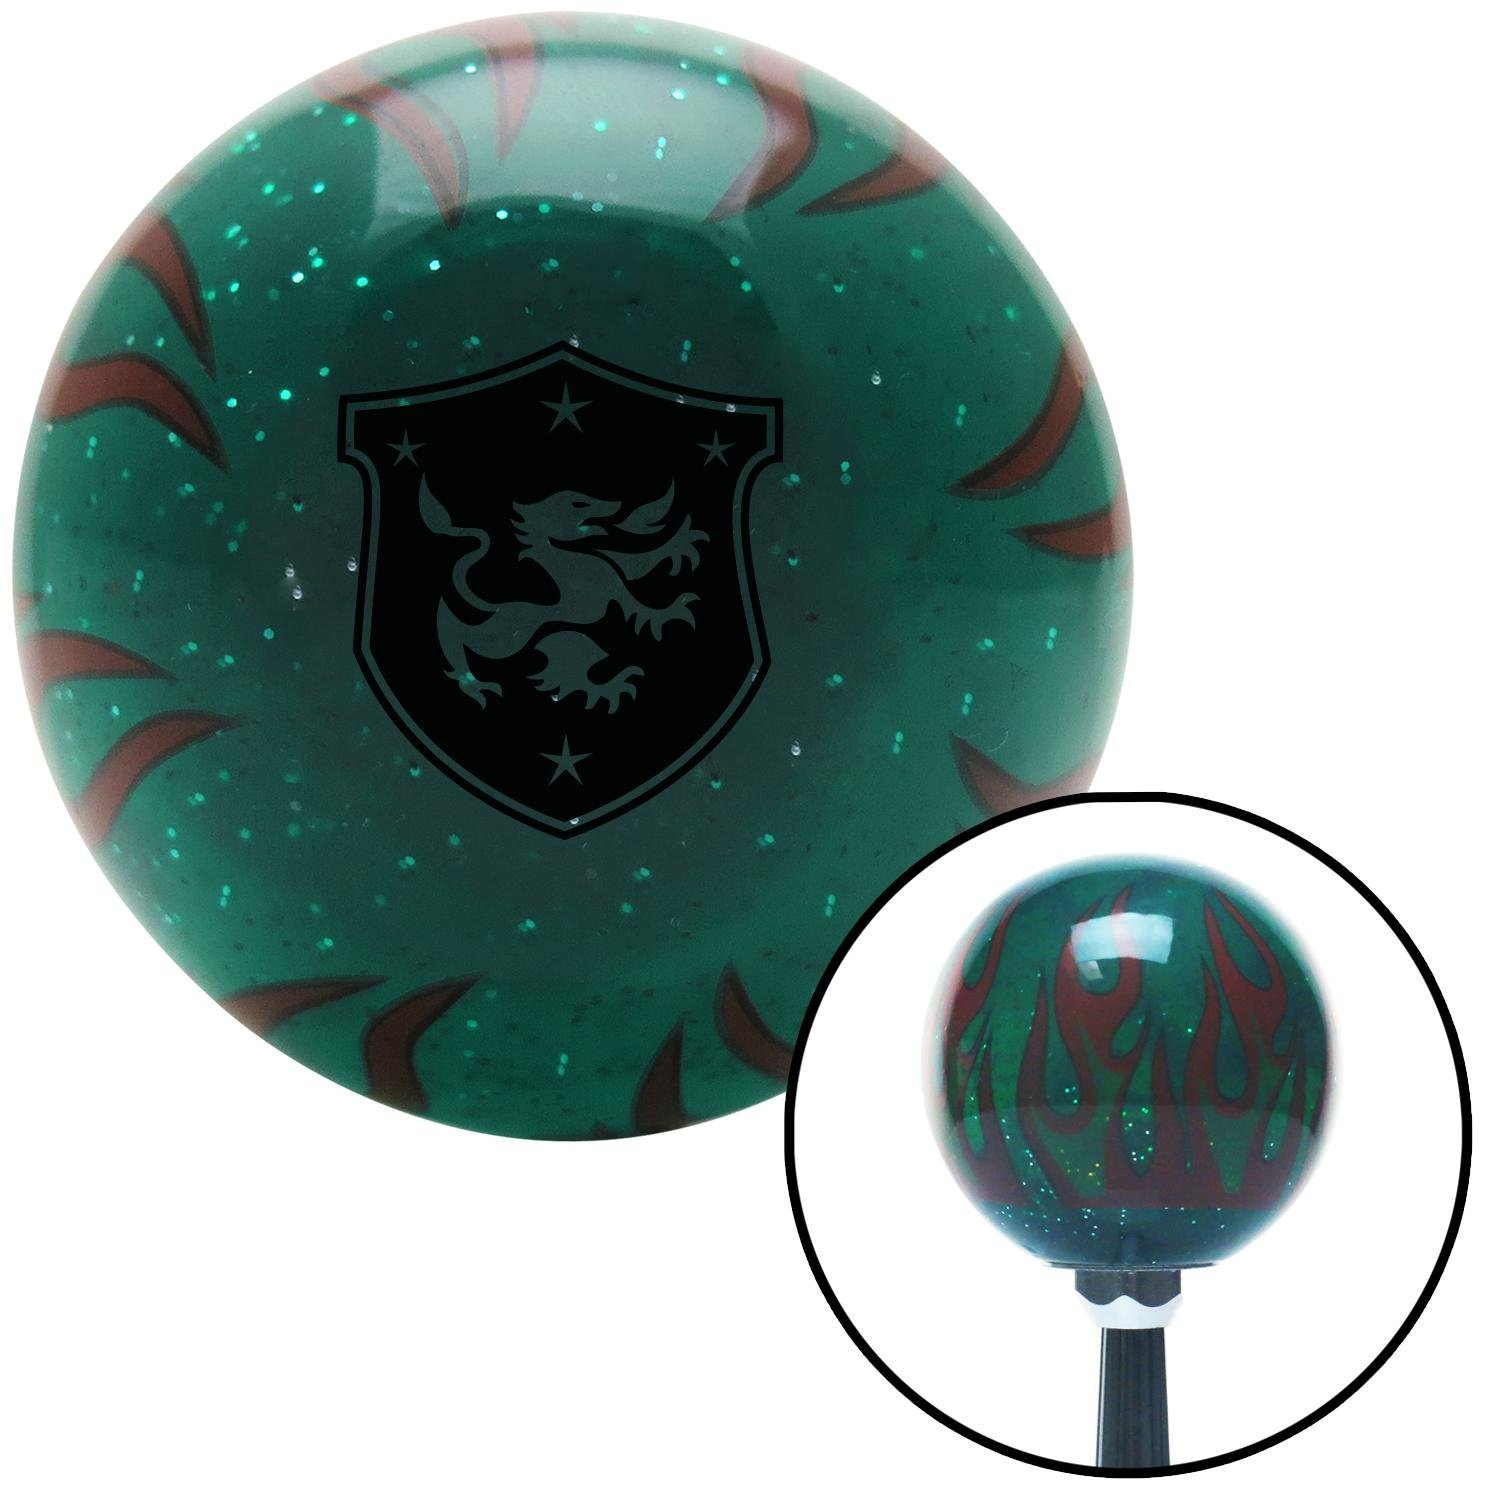 American Shifter 262000 Green Flame Metal Flake Shift Knob with M16 x 1.5 Insert Black Dragon Crest